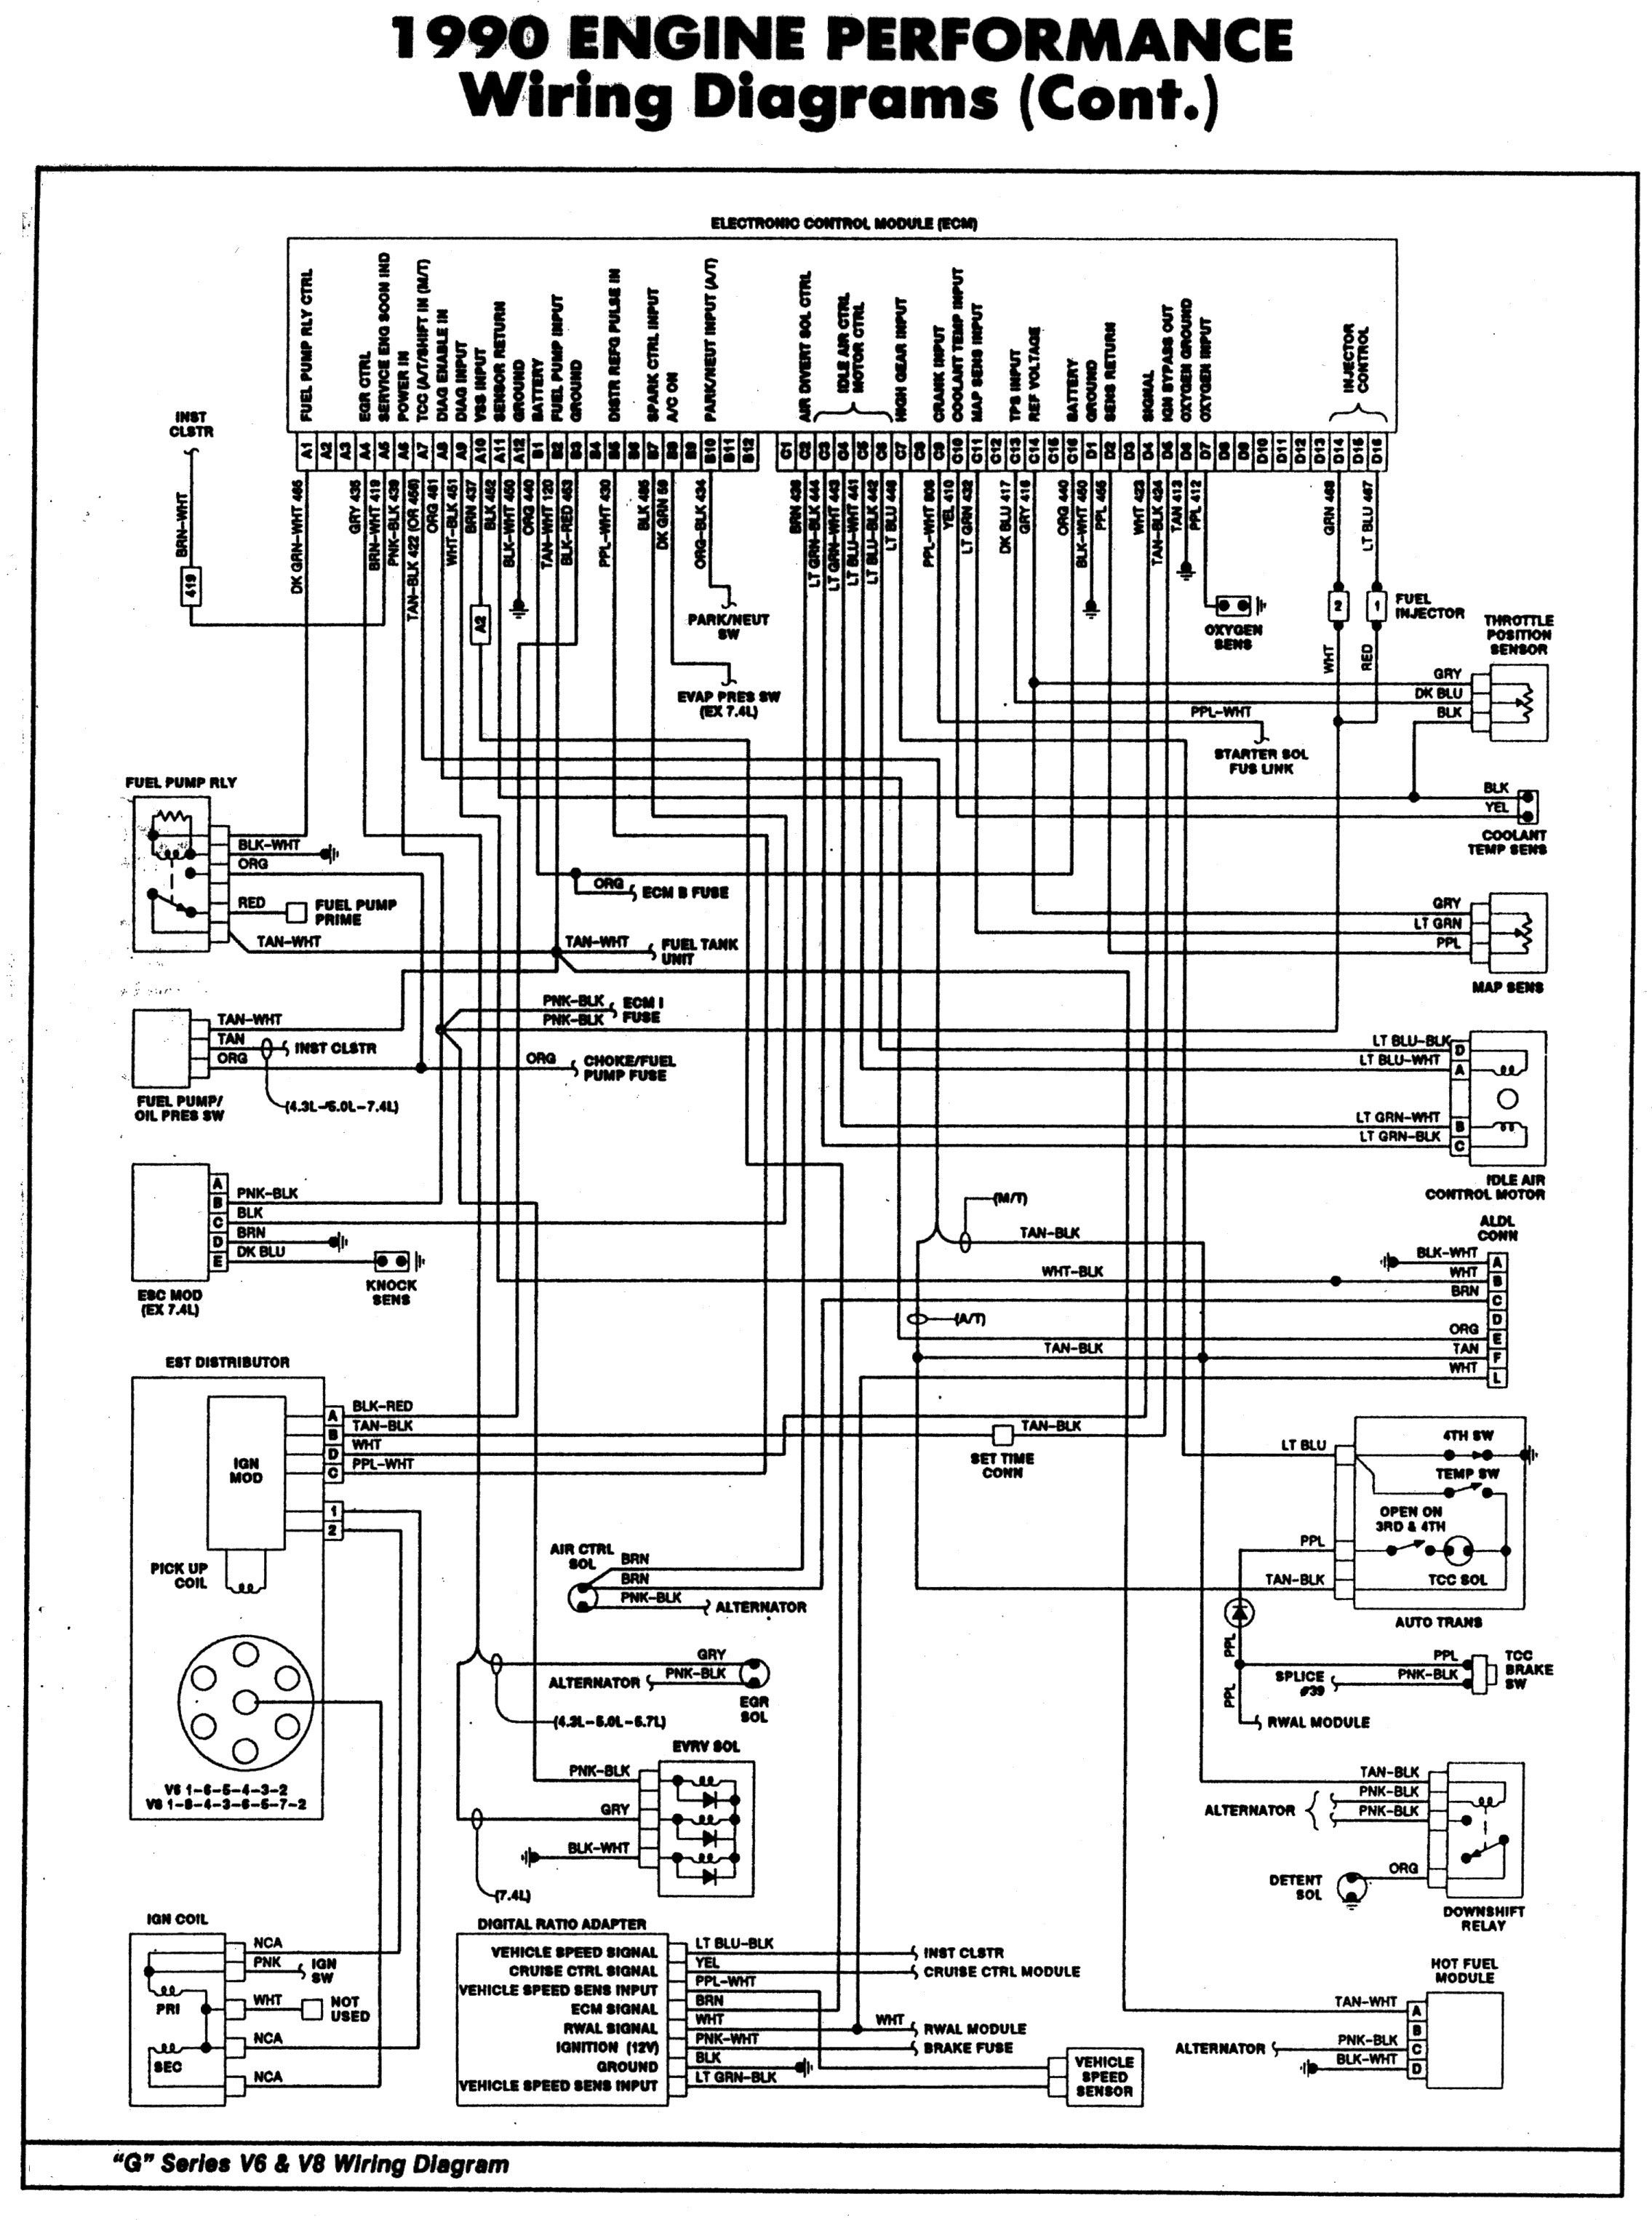 wiring diagram for 2000 chevy silverado truck wiring diagrams free wiring diagram e11  truck wiring diagrams free wiring